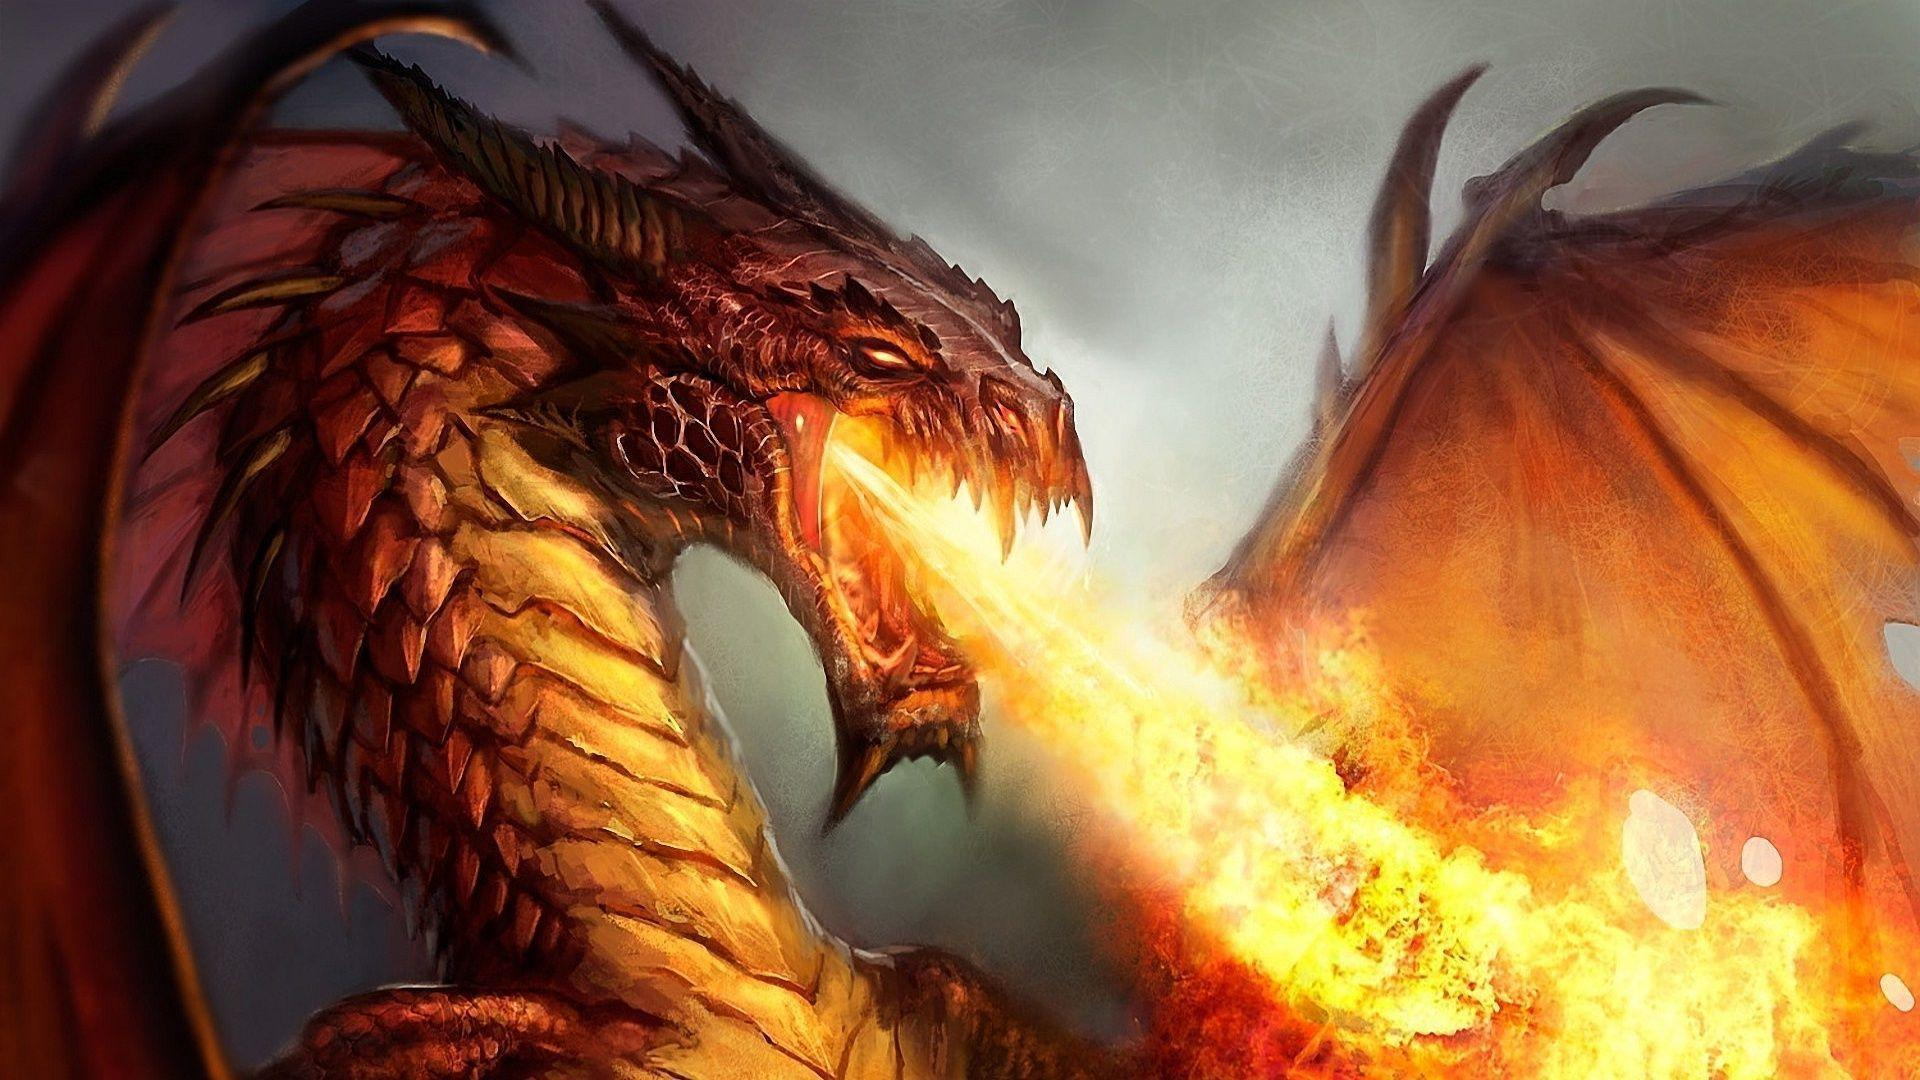 Real Fire Dragon: Fire Dragon Wallpapers